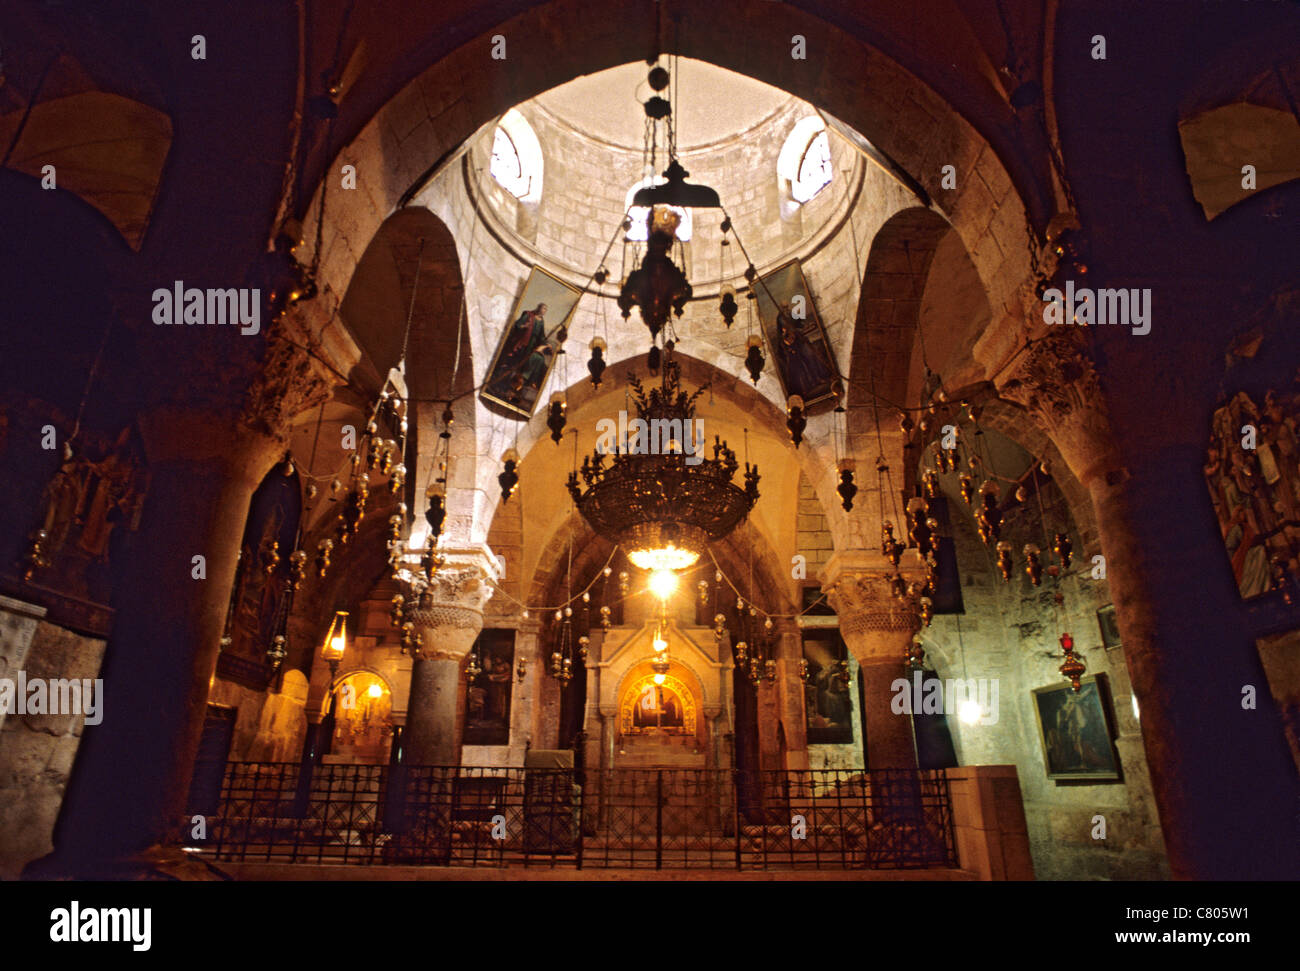 Israel, Jerusalem, Church of the Holy Sepulchre, the interior - Stock Image